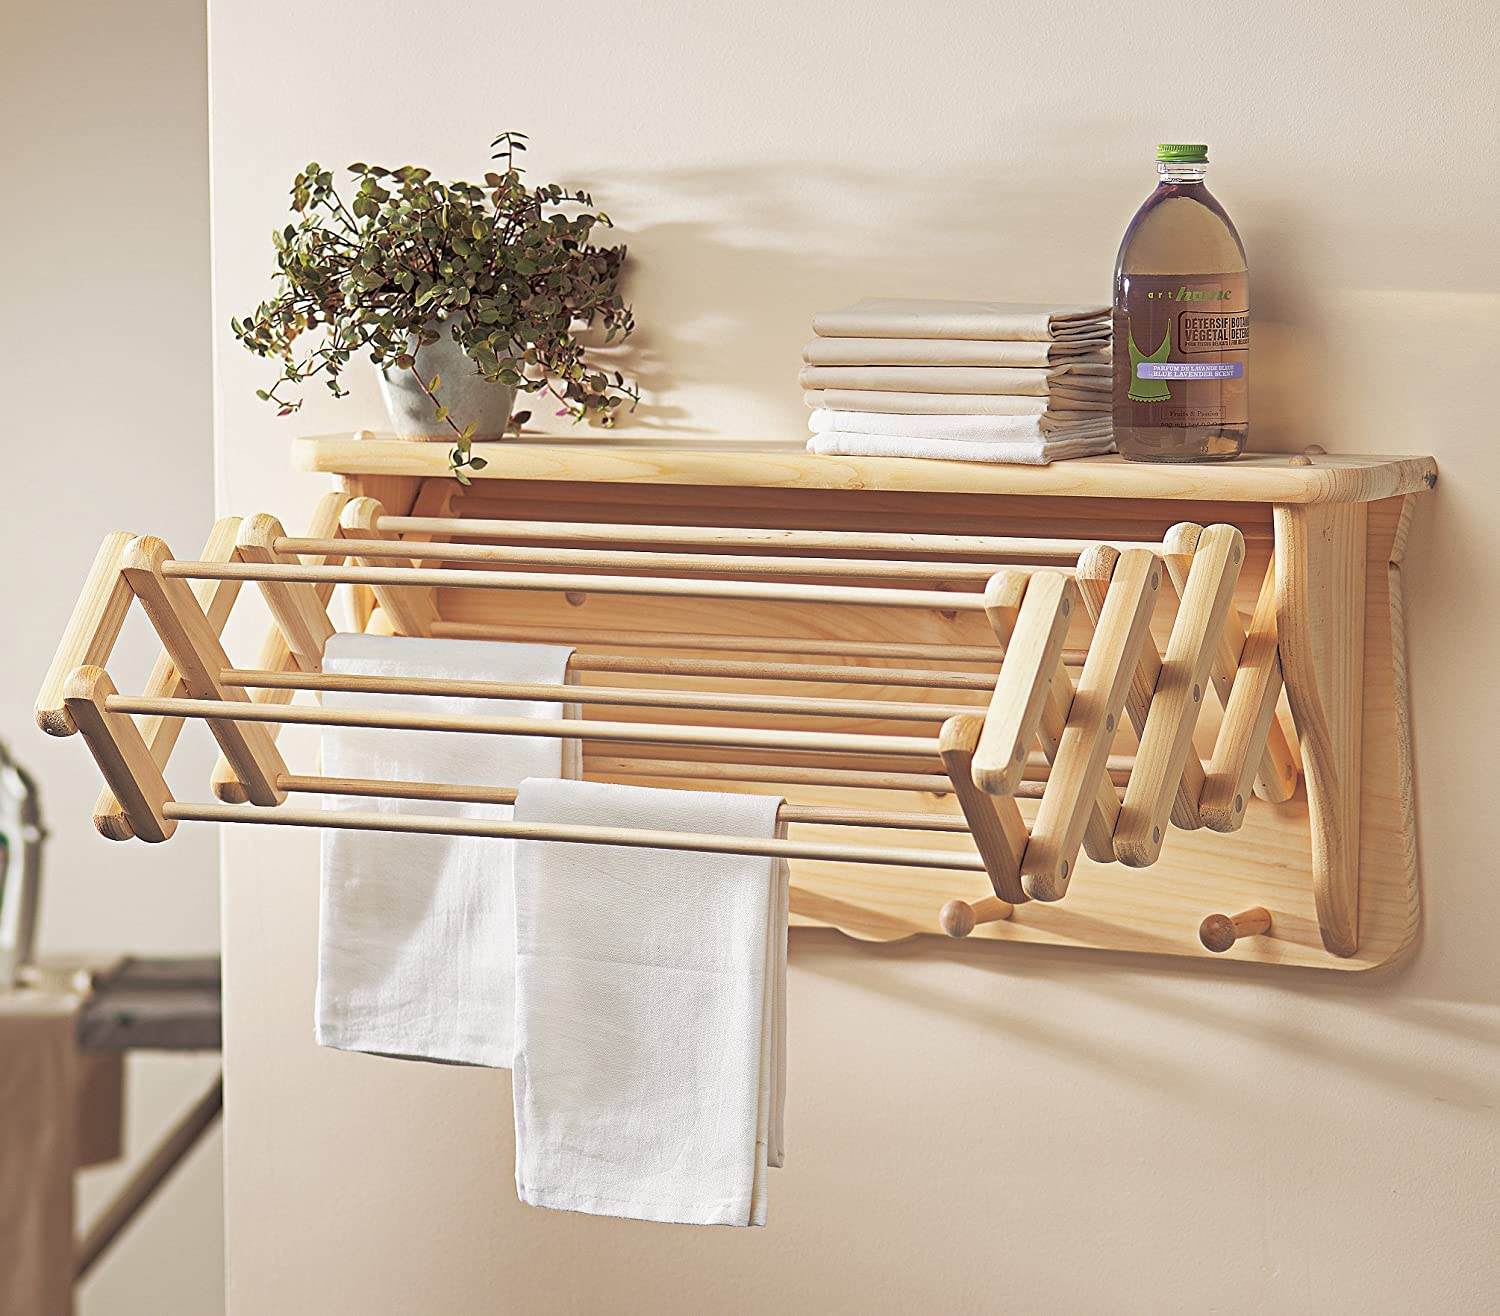 wooden laundry rack drying shelf wardrobe wall folding mount hanger cloths stand ebay. Black Bedroom Furniture Sets. Home Design Ideas